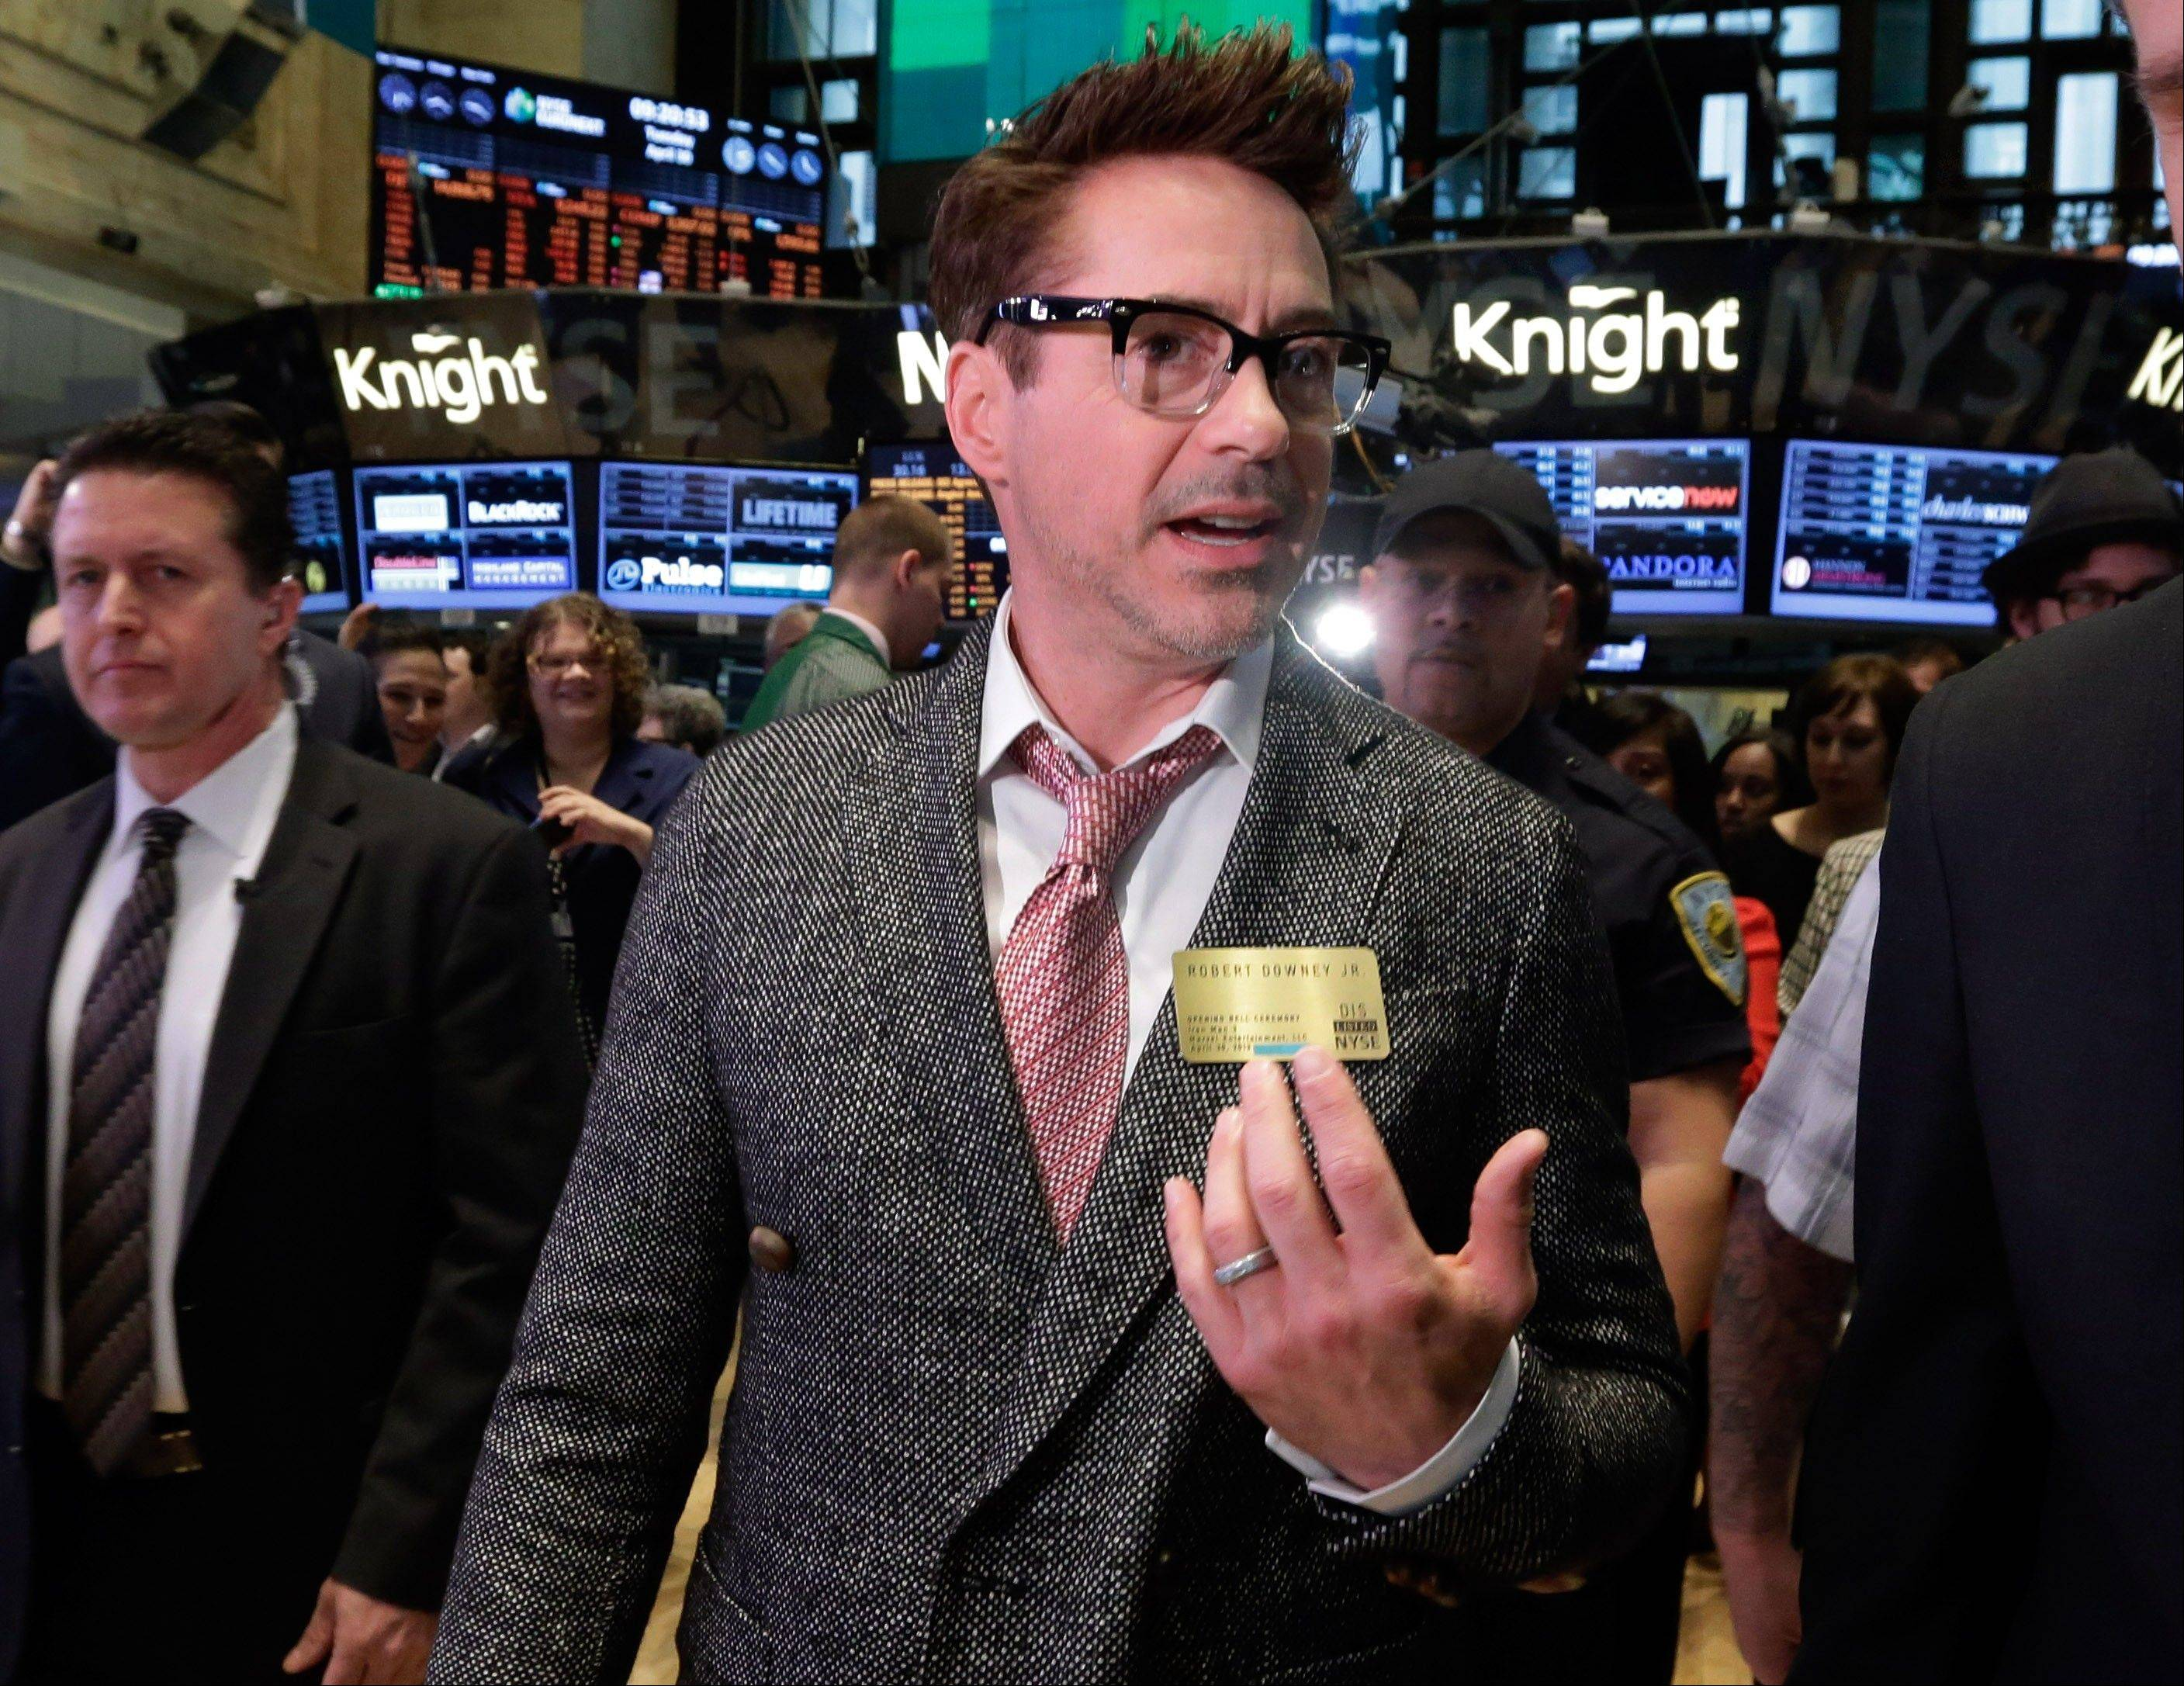 ASSOCIATED PRESS Actor Robert Downey Jr. visits the trading floor of the New York Stock Exchange before ringing the opening bell, Tuesday. Downey�s film, �Iron Man 3,� also starring Don Cheadle and Gwyneth Paltrow, opens nationwide on May 3.